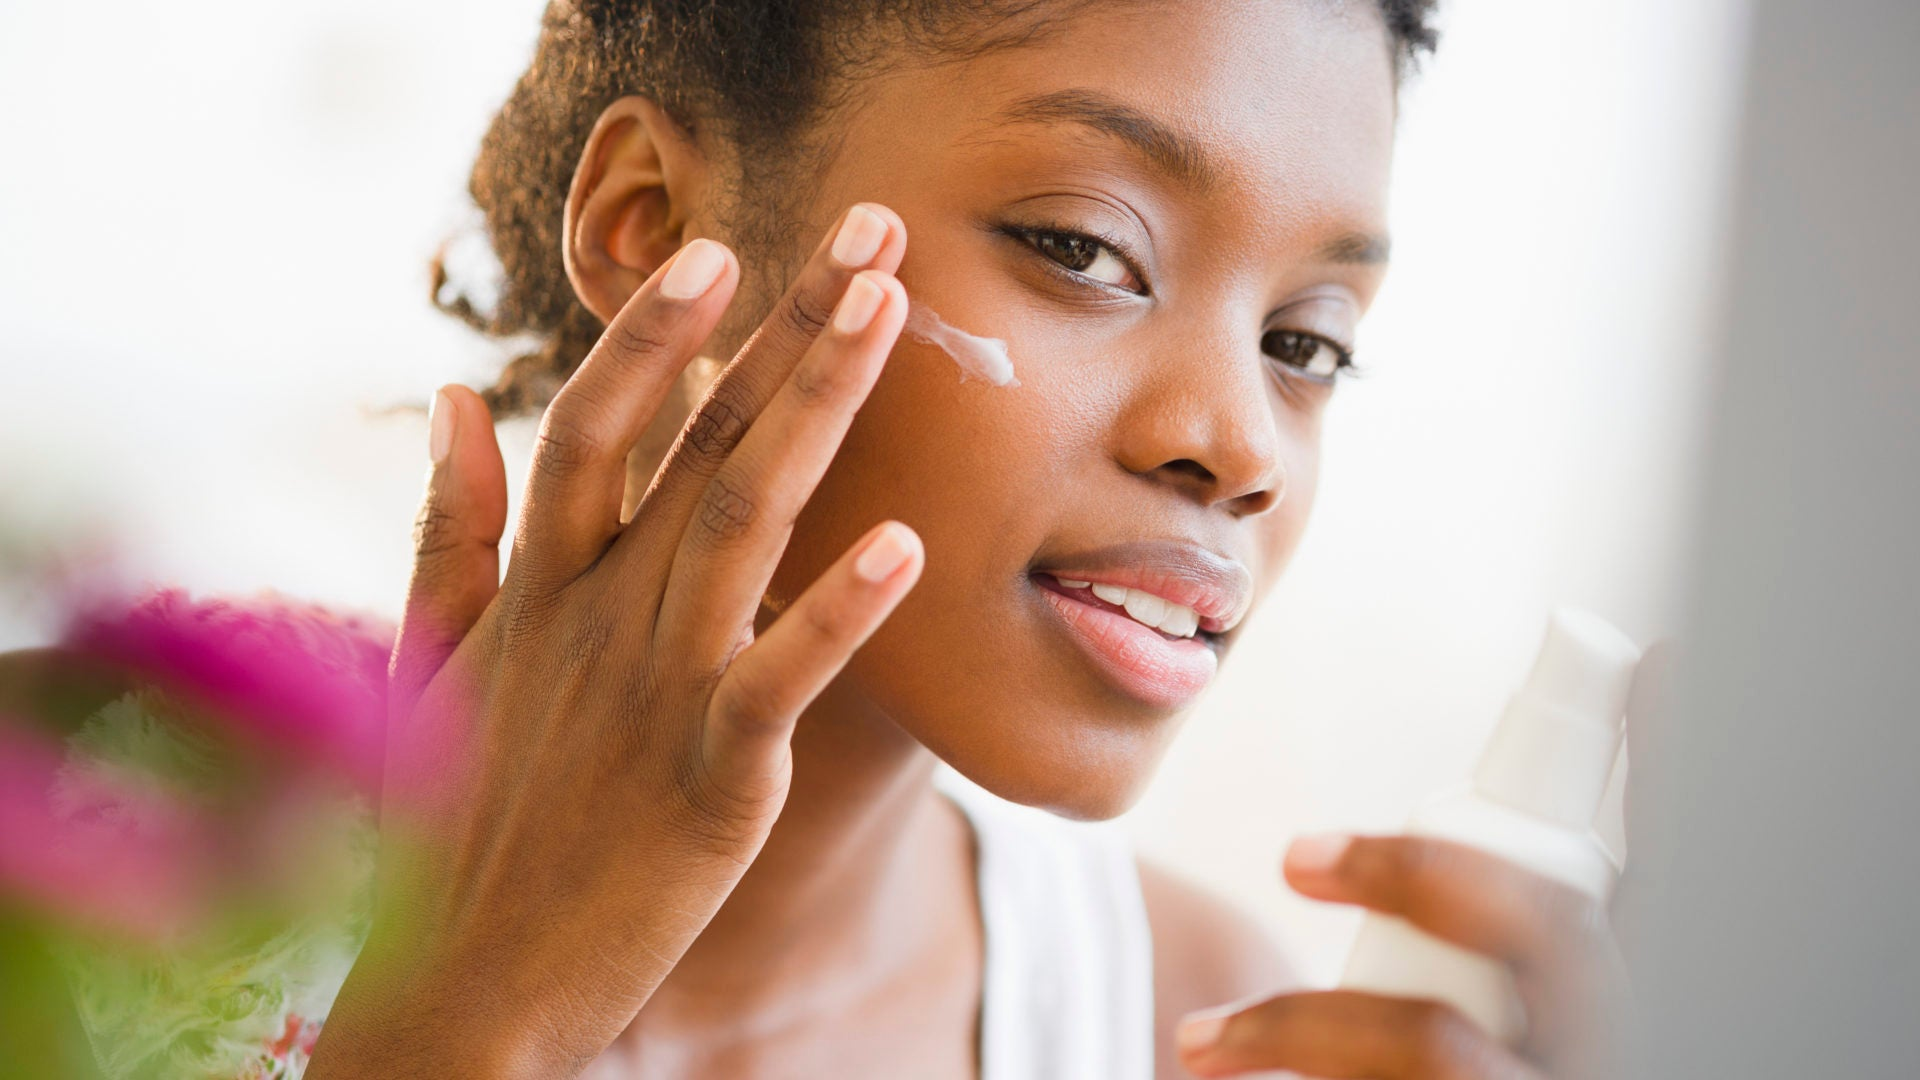 The Definitive Guide to Sunscreen For Black Women